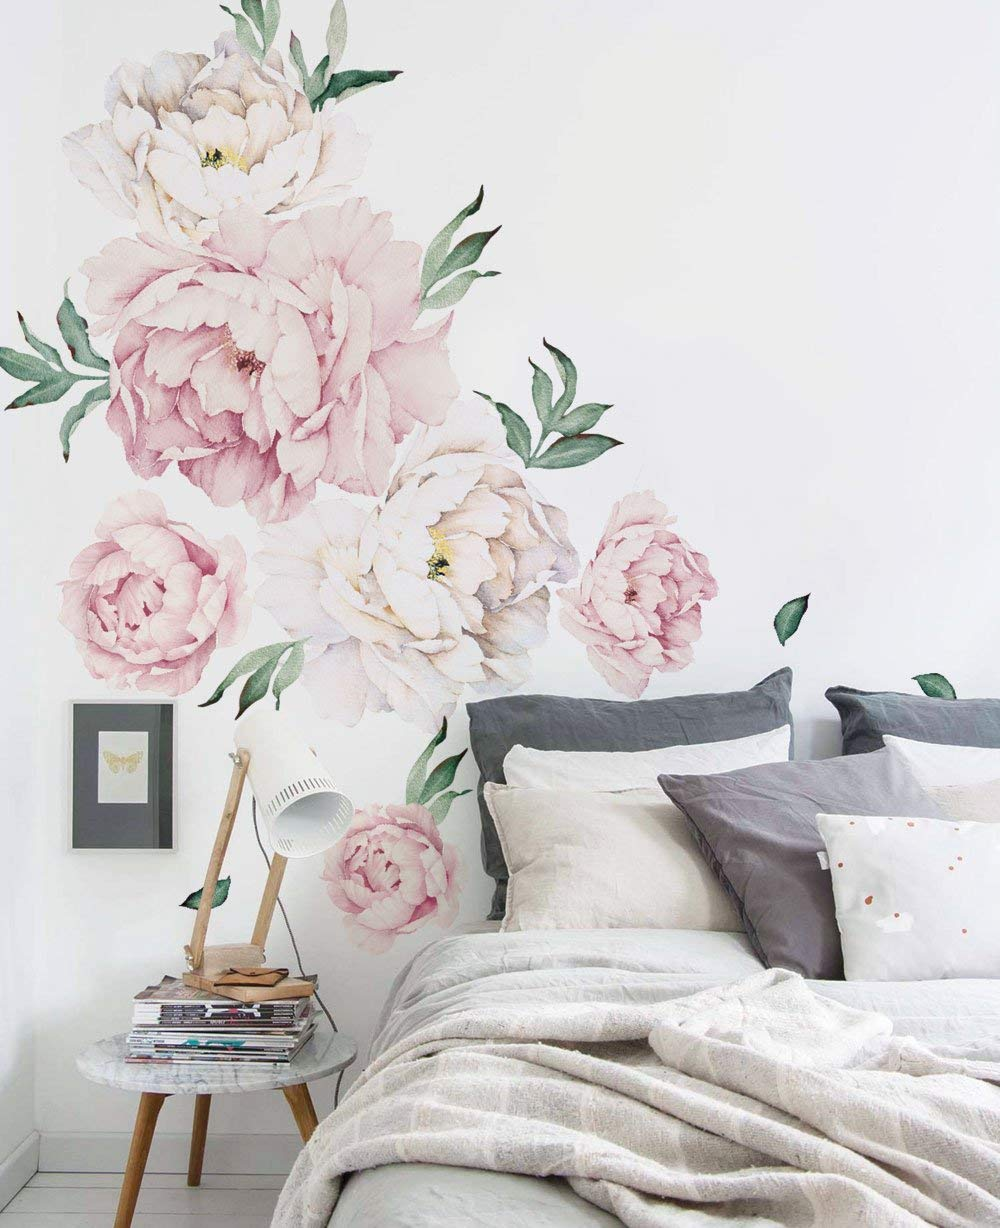 Simple Shapes Peony Flowers Wall Sticker - Vintage Pink